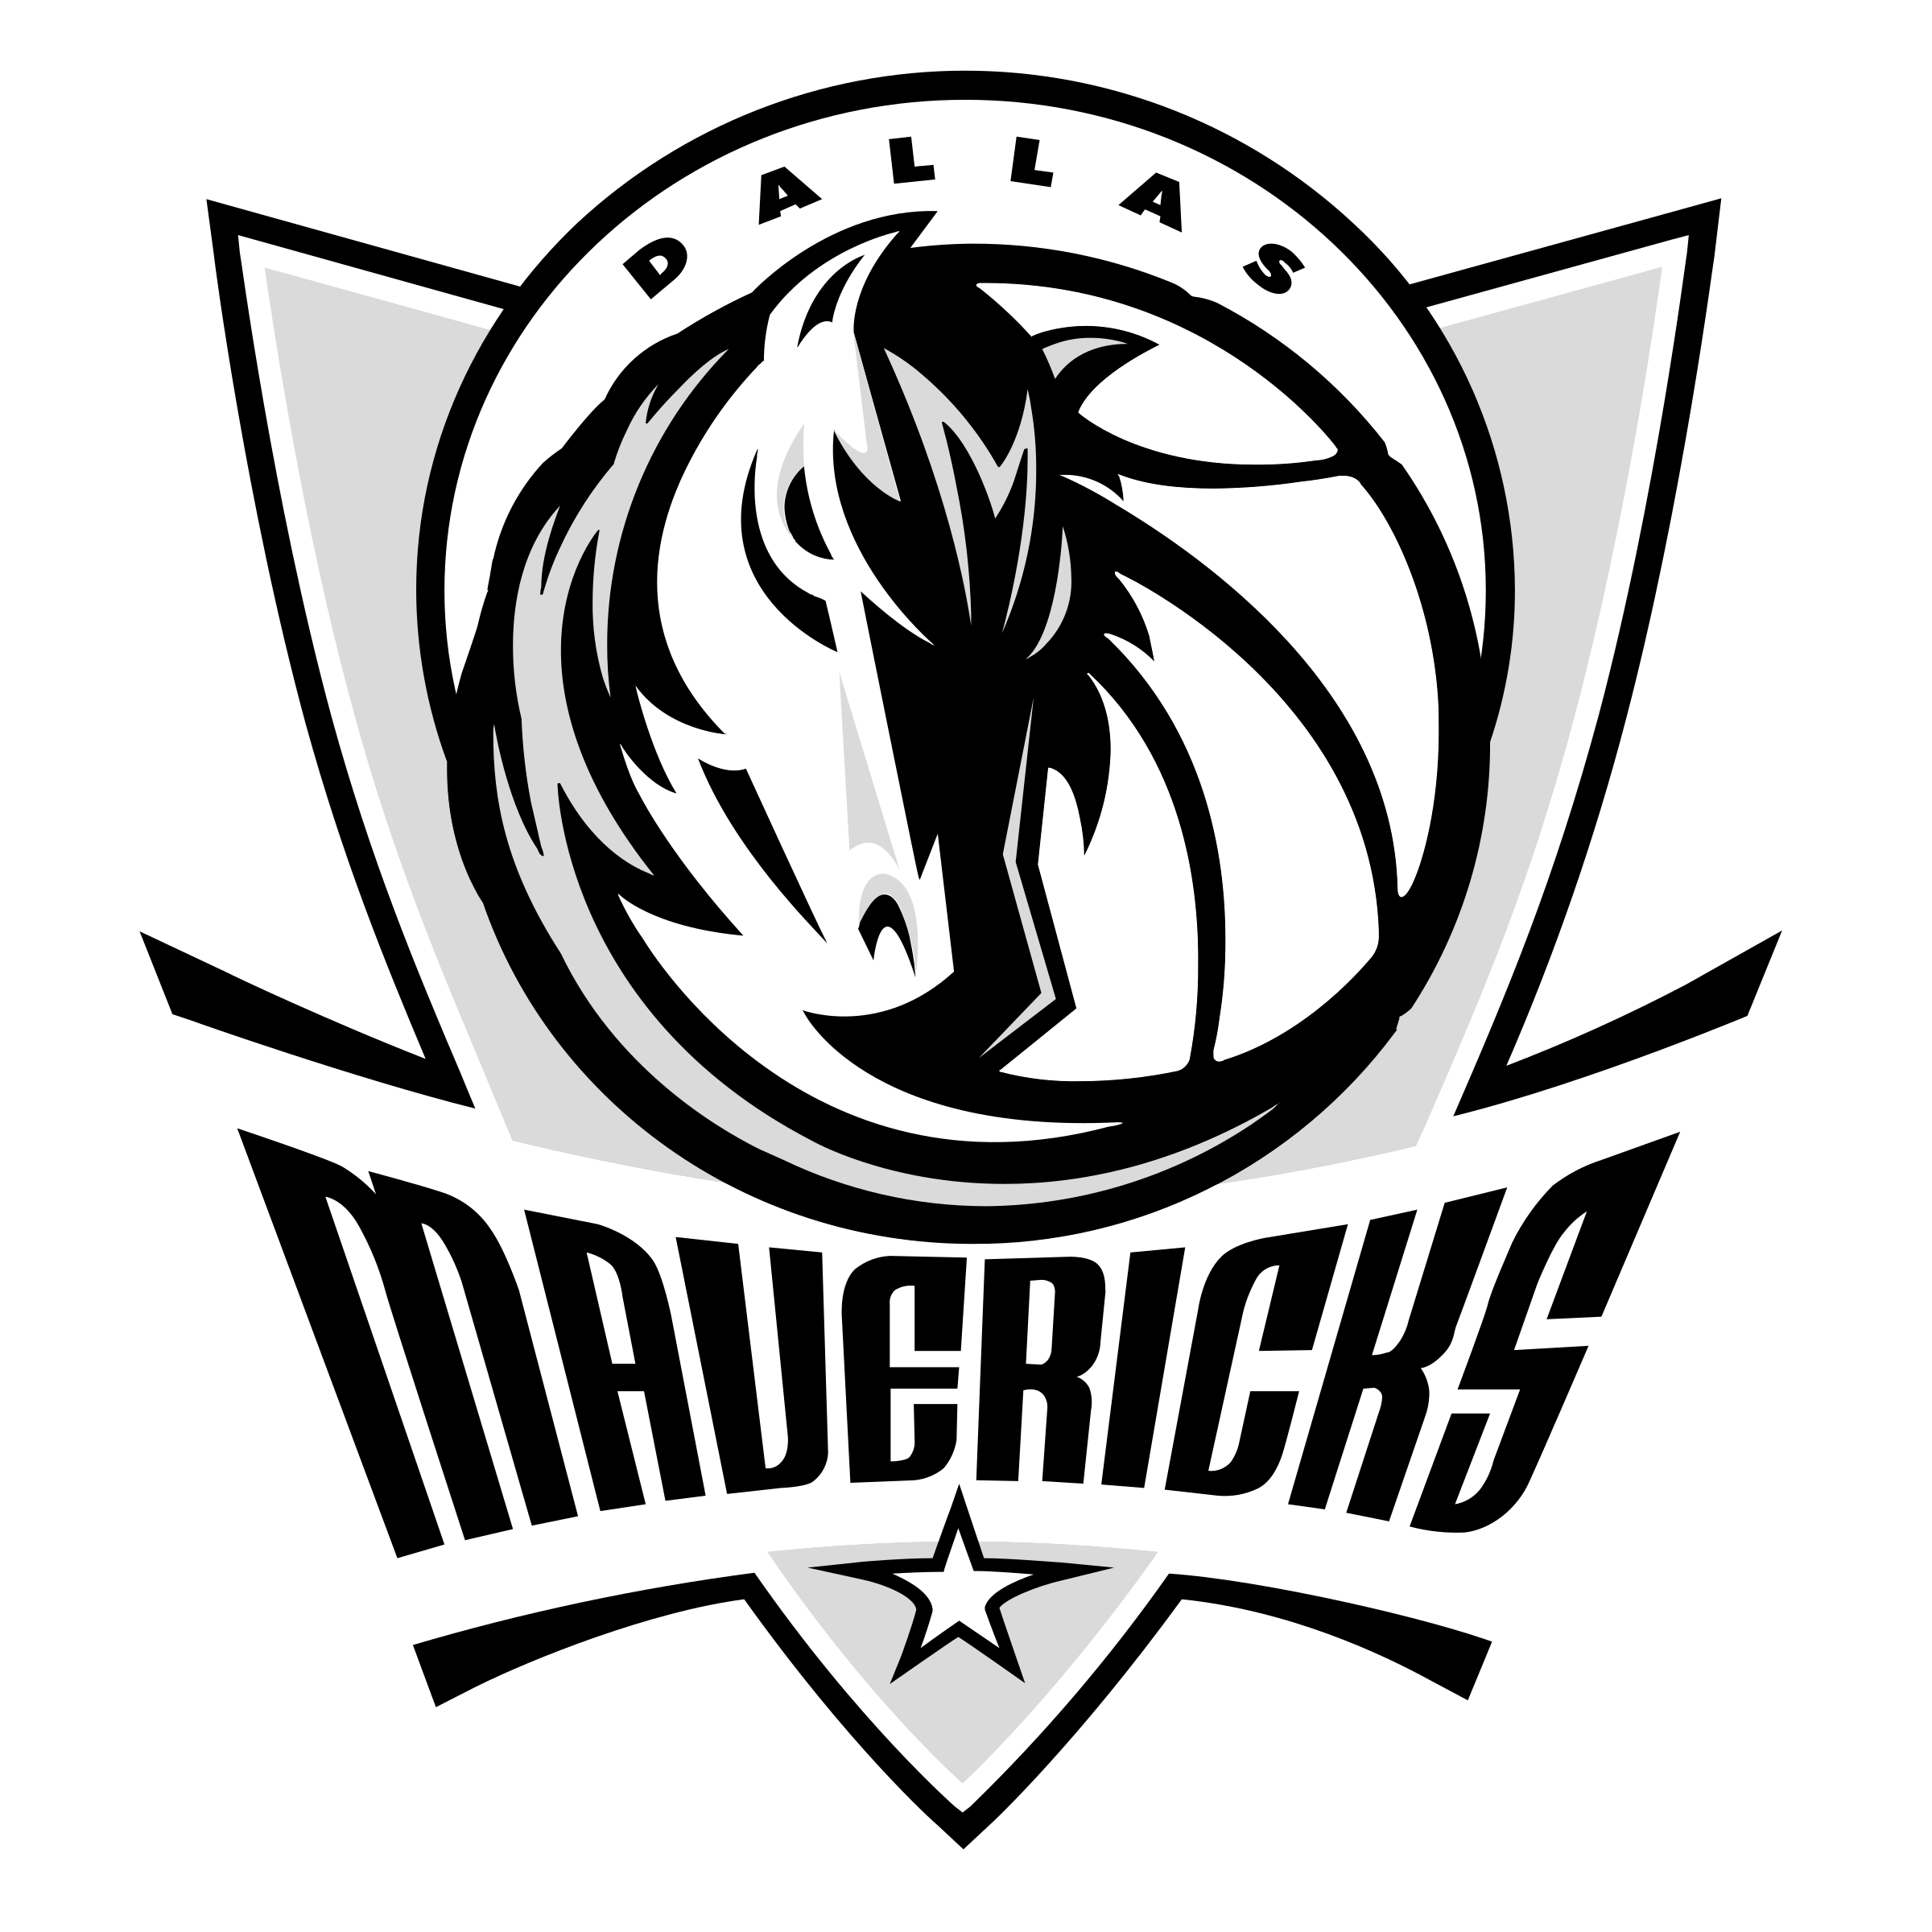 Dallas Mavericks Logo furthermore Loreal Paris in addition BattleLost furthermore Petersaysdenim in addition Watch Your Watches. on amazon logo vector